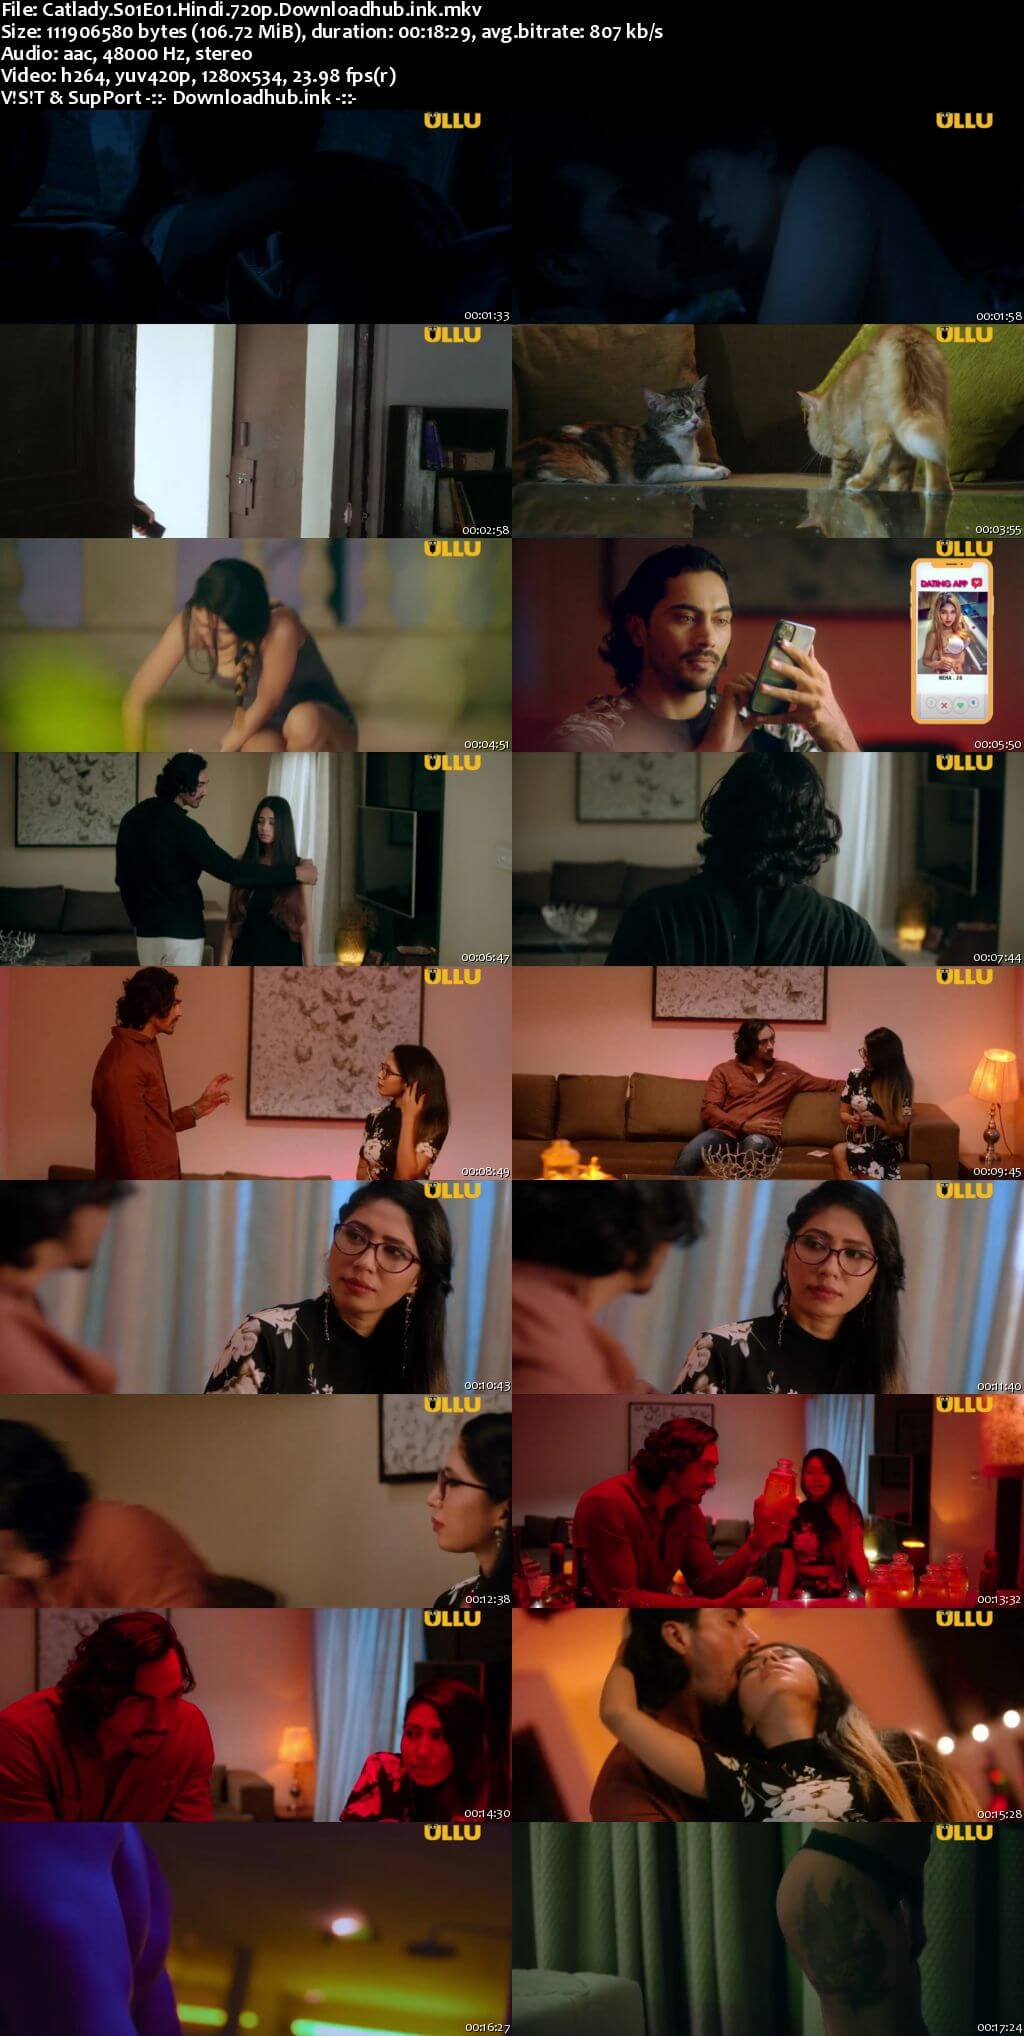 Catlady 2021 Hindi S01 ULLU WEB Series 720p HDRip x264